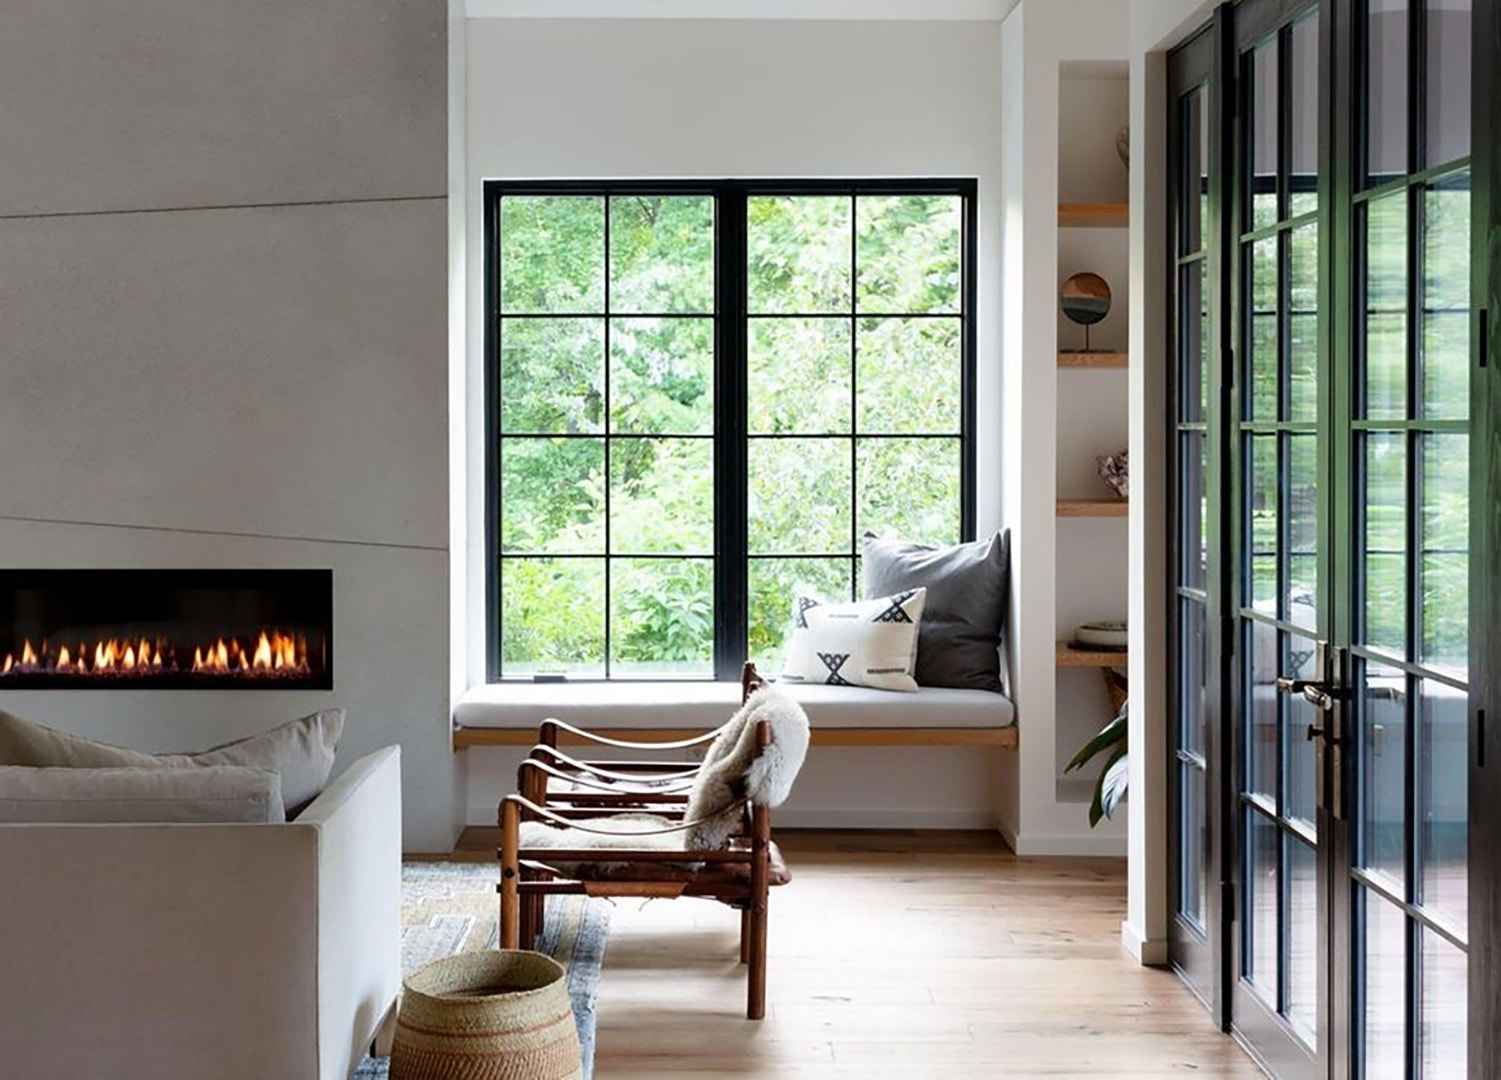 Two black casement windows open the living room to fresh air and offer seating area to warm up by the fireplace.